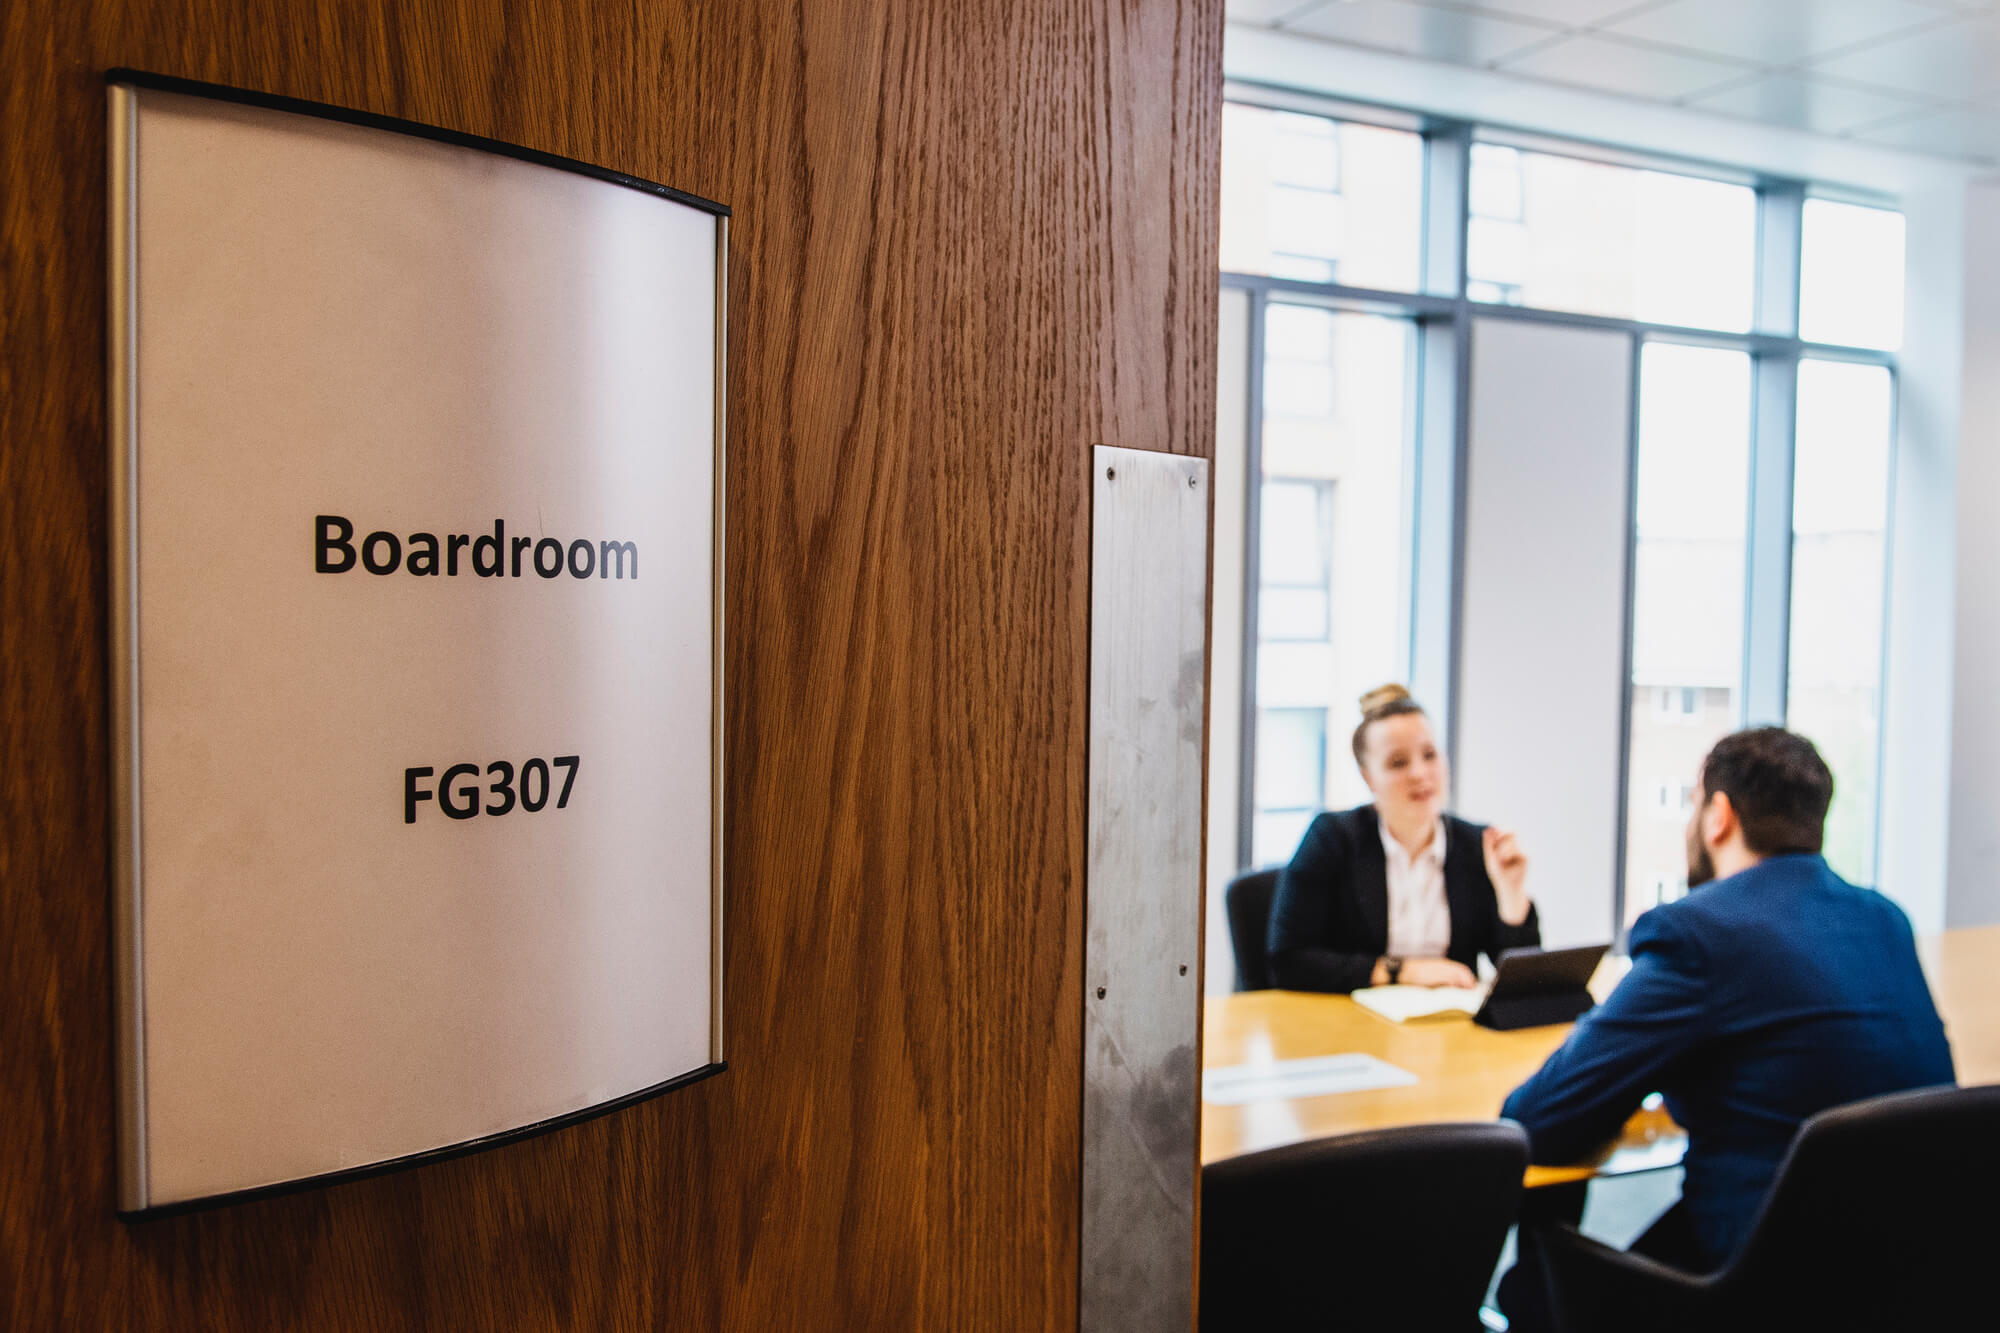 Boardroom door in foreground with two business people at table in background